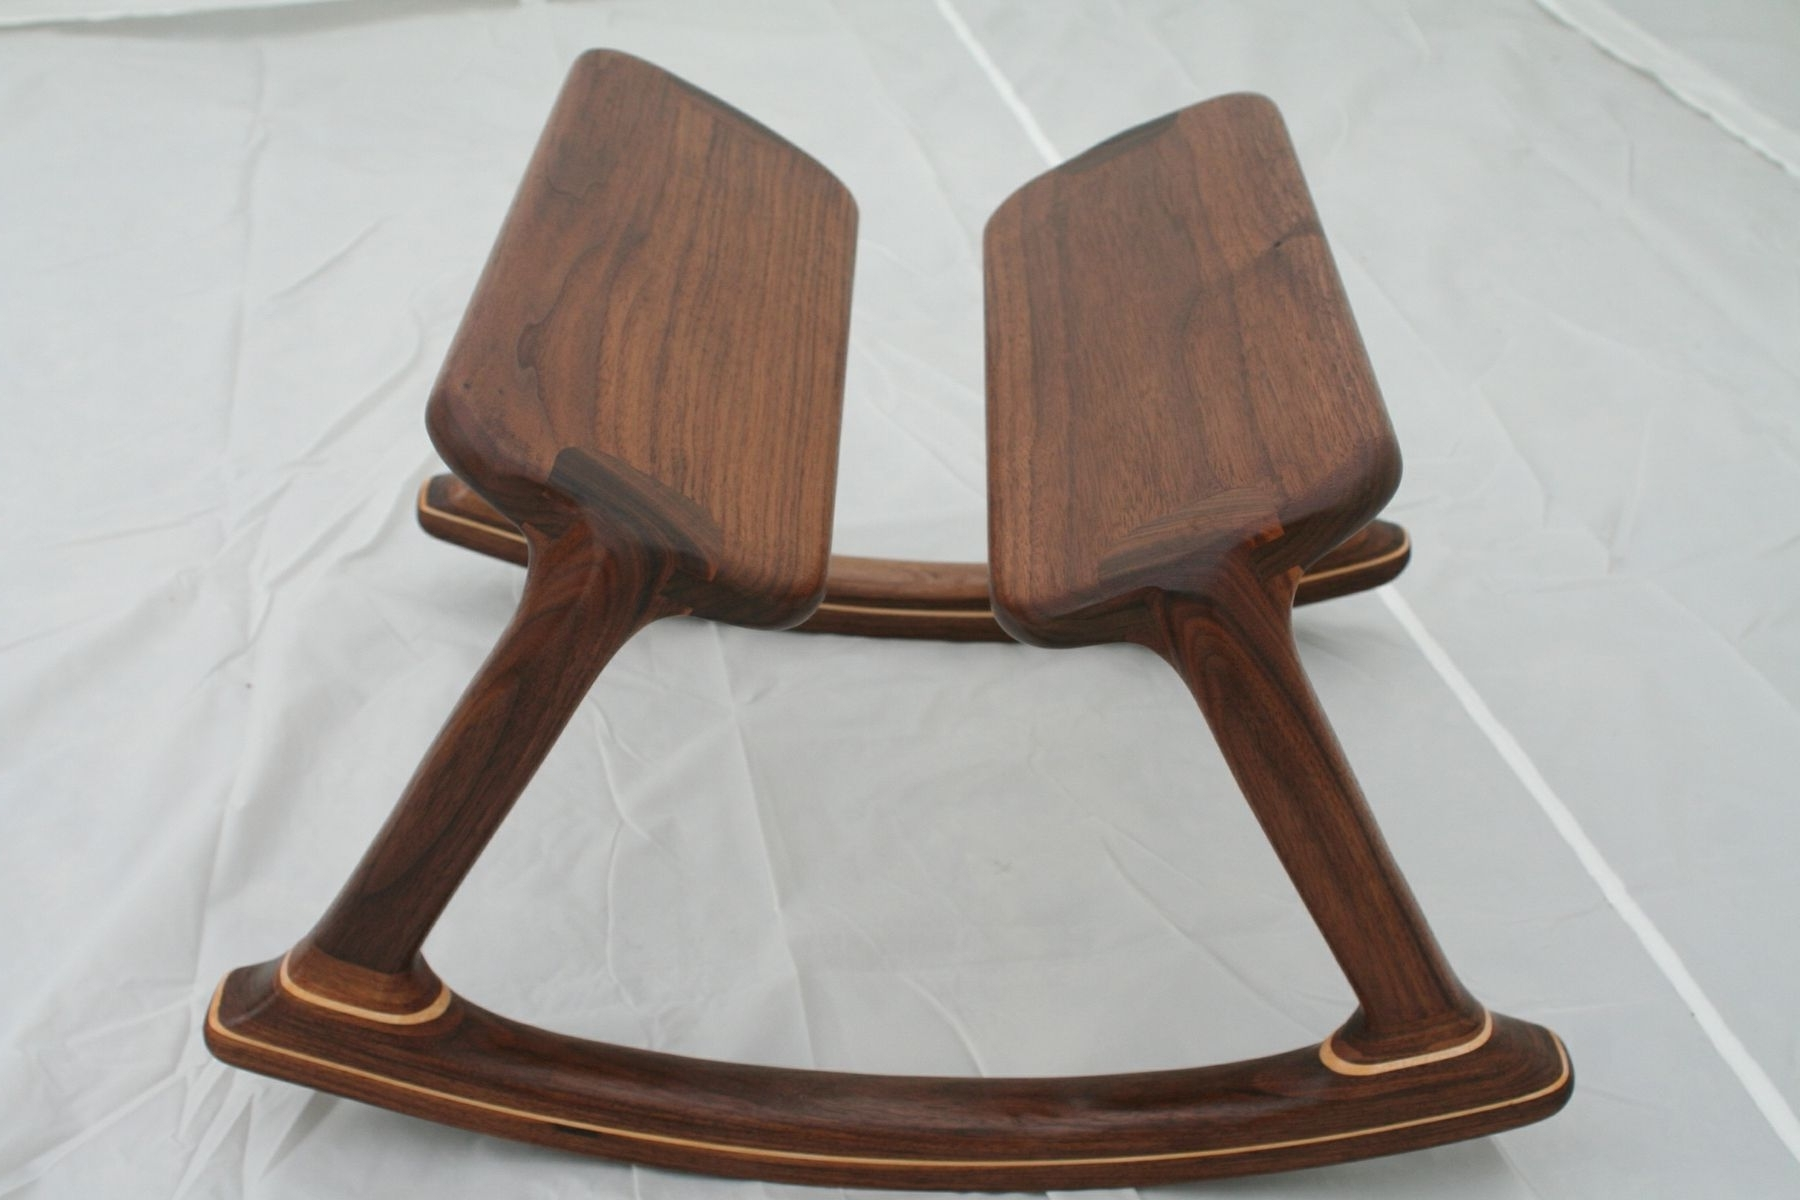 Rocking Chairs With Footstool Intended For Recent Custom Walnut Rocking Footstoolwood In Motion (View 2 of 20)